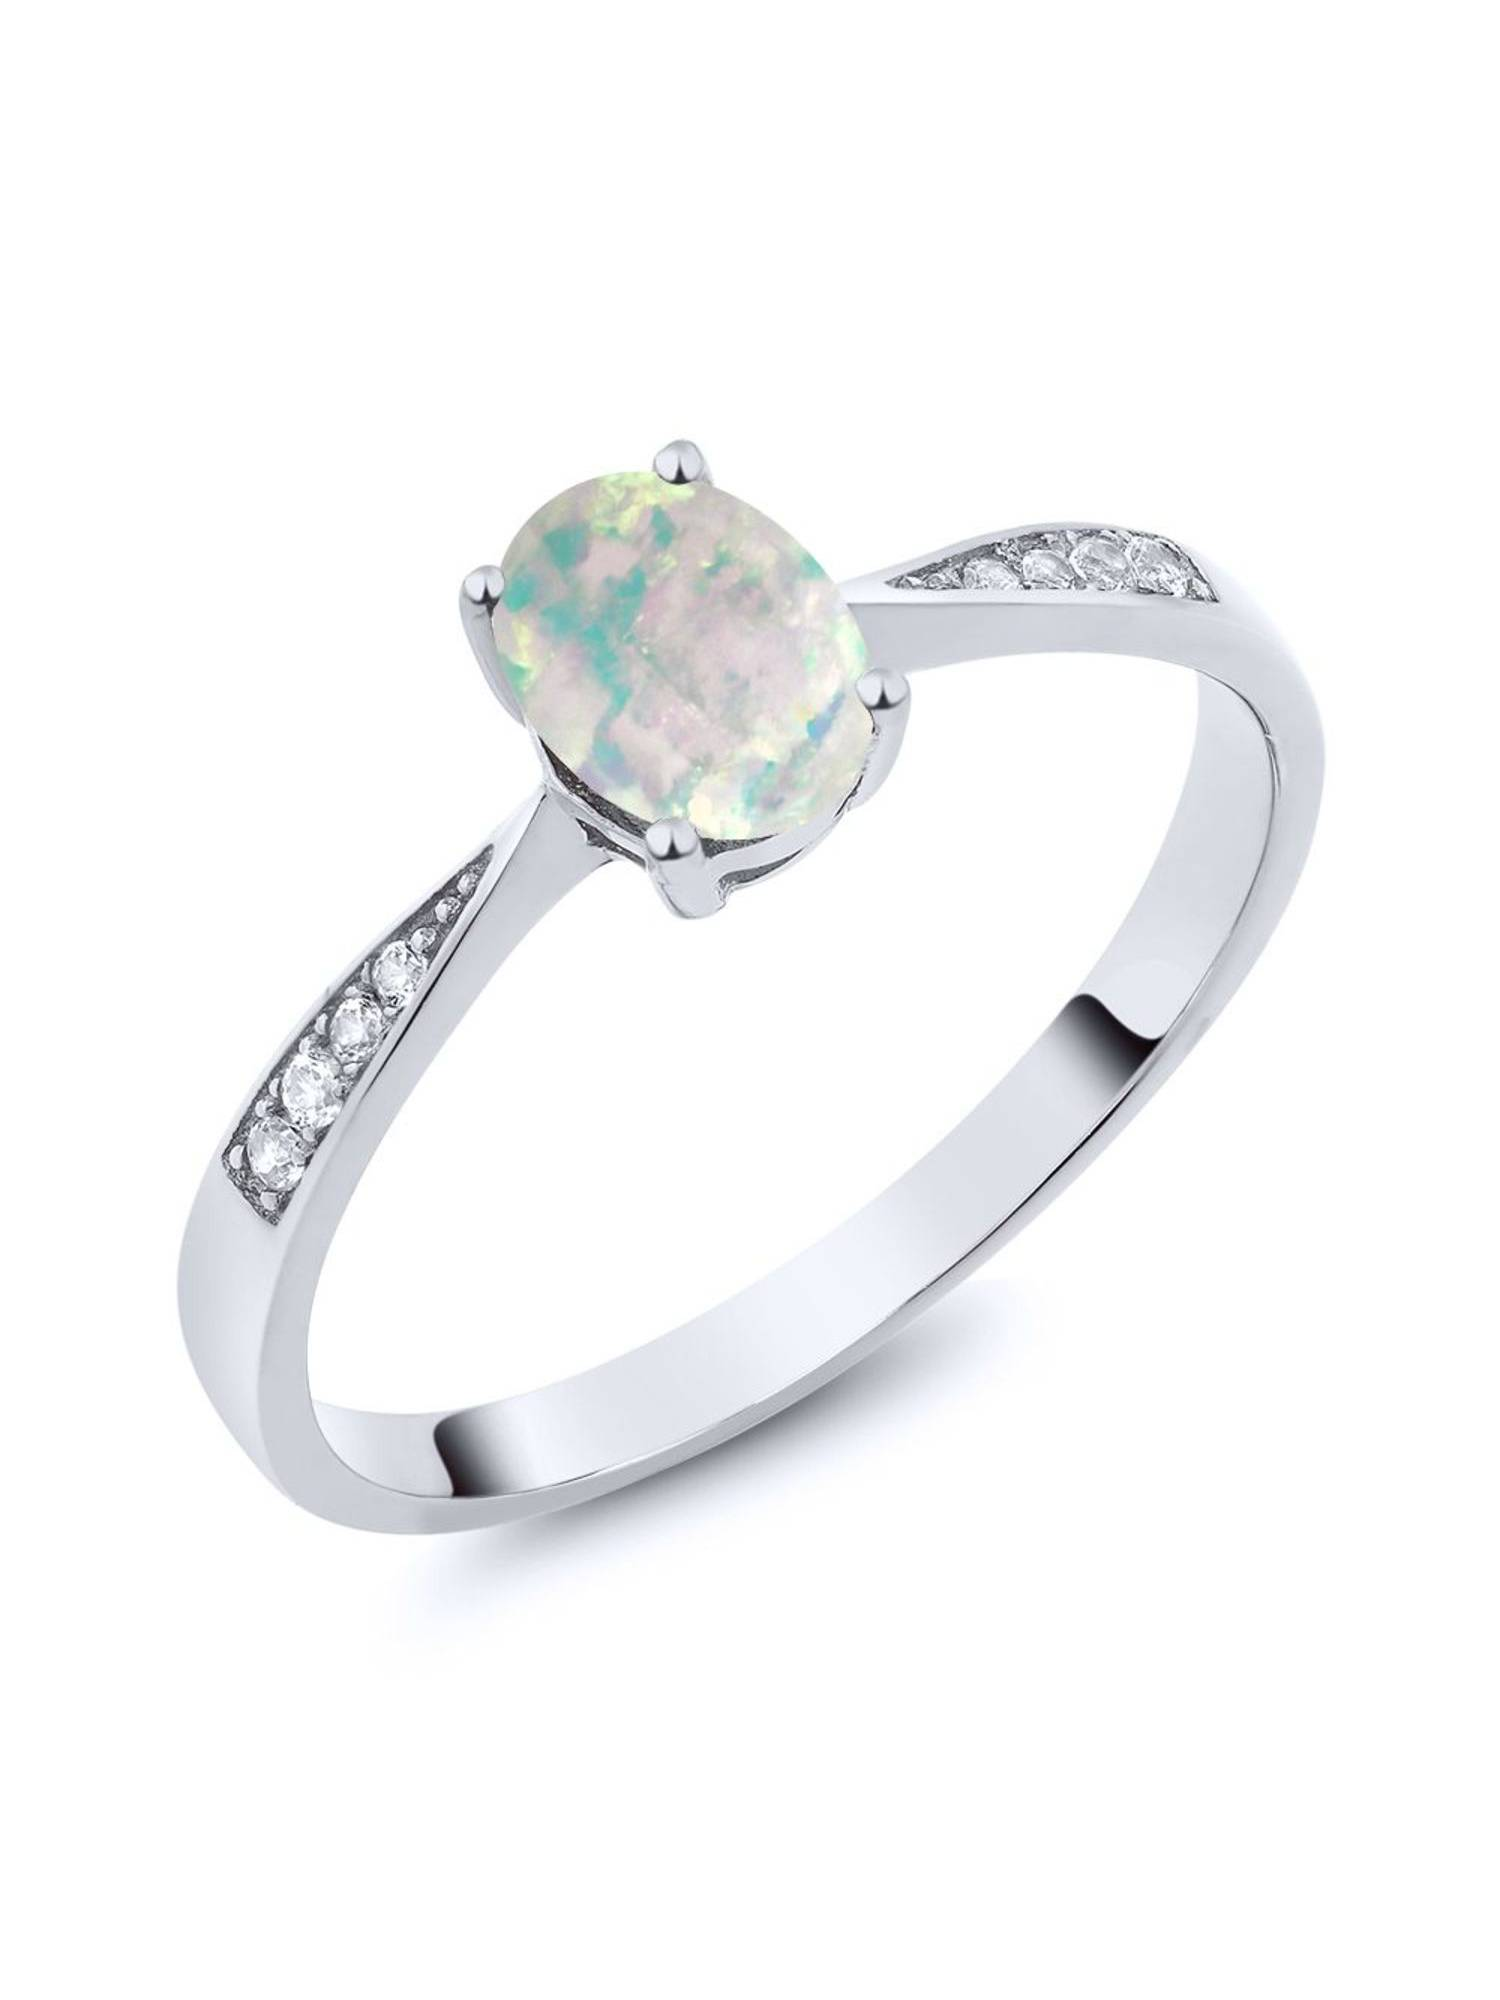 10K White Gold Diamond Ring with 0.69 Ct Cabochon White Simulated Opal by